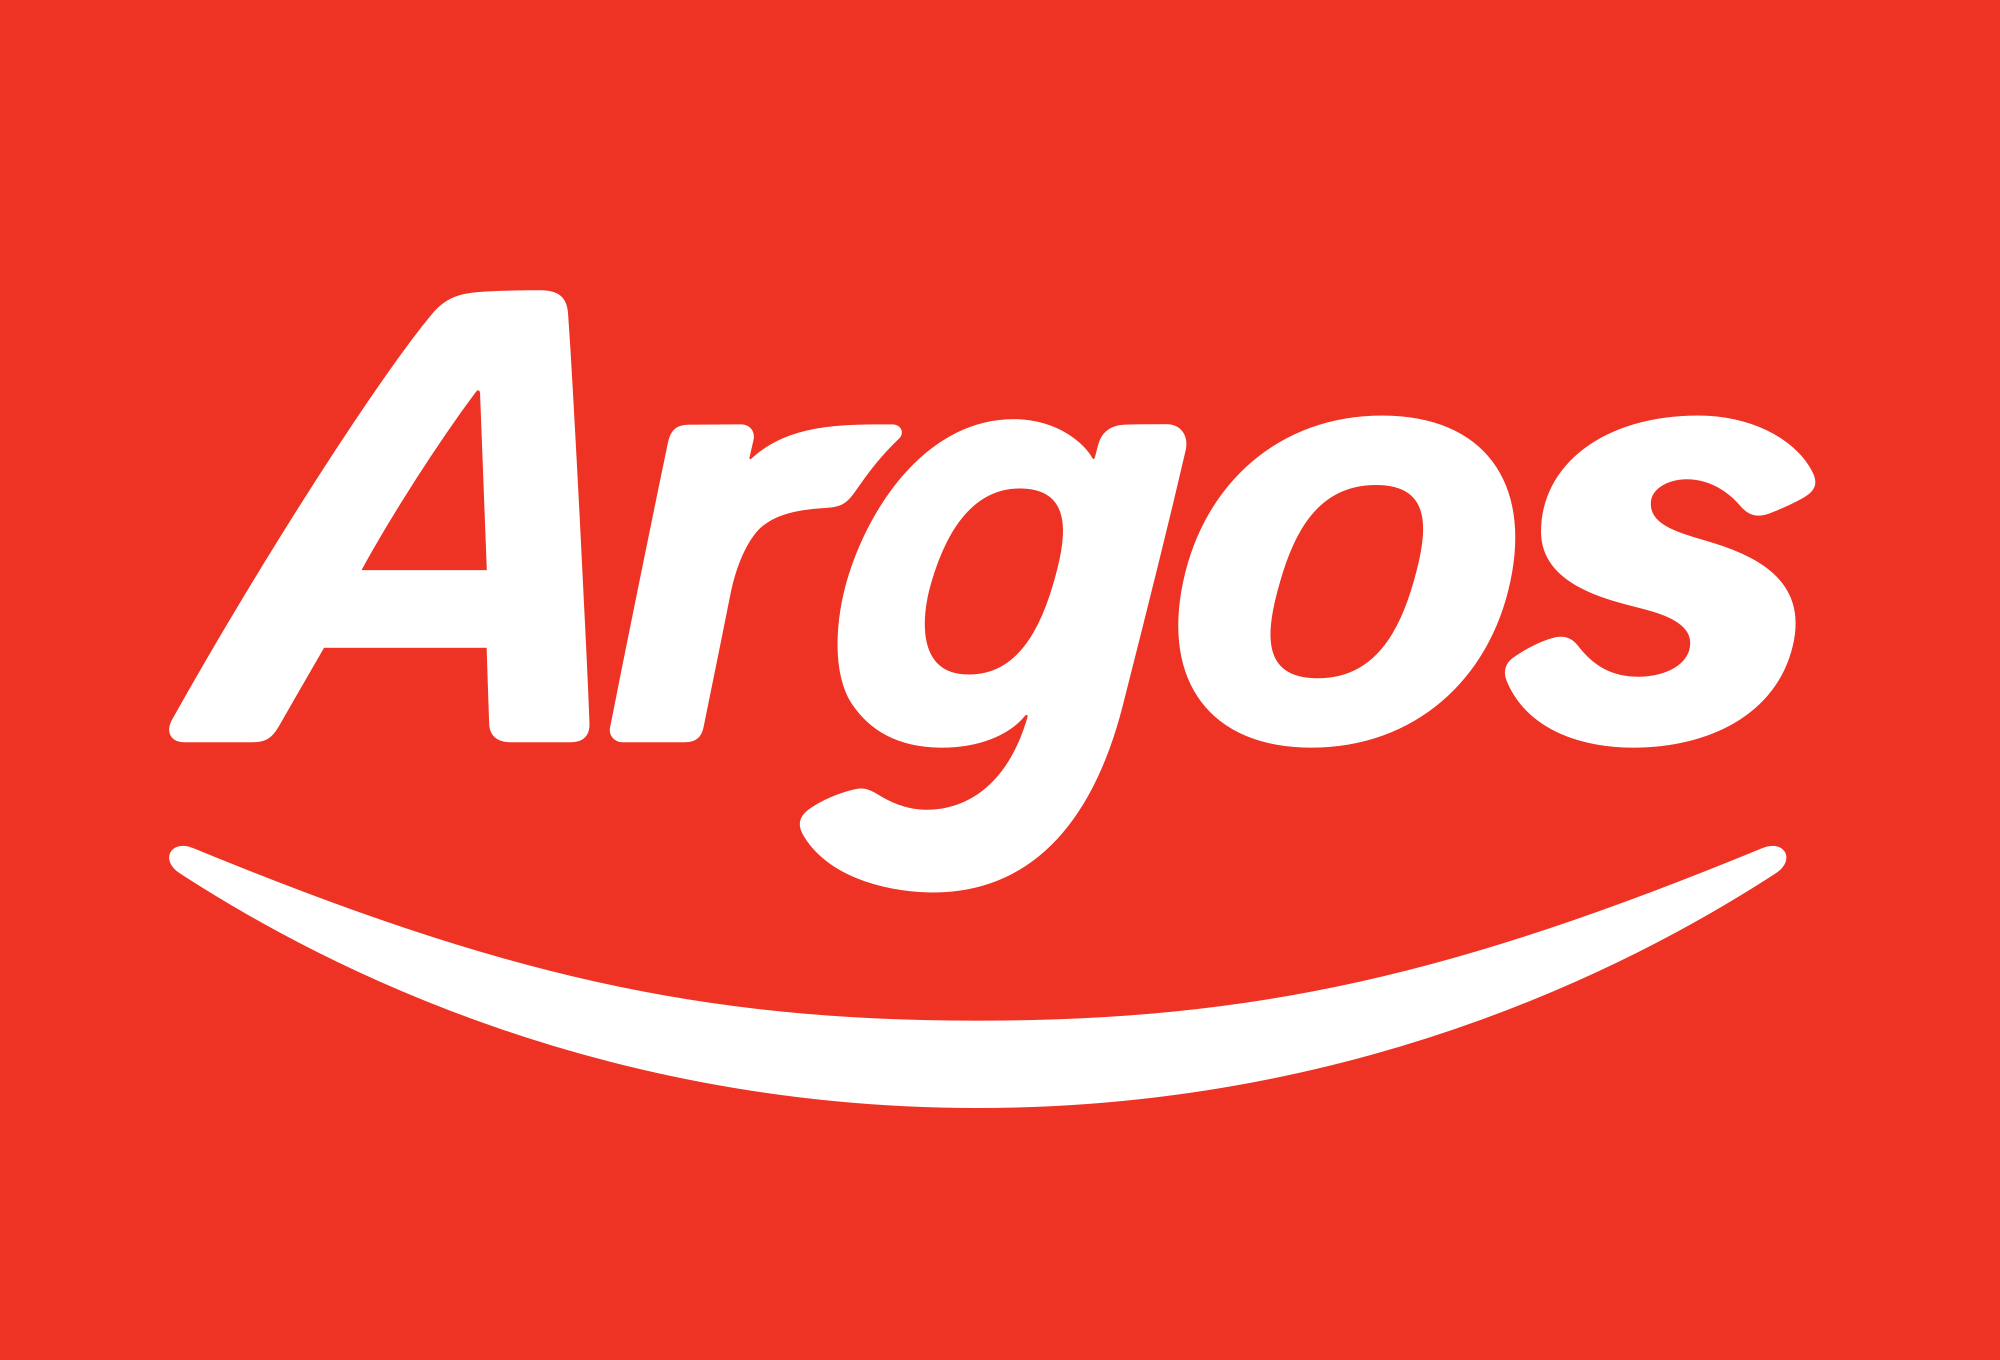 Wiring Diagram Walk In Freezer Argos Support Find Manuals User Guides And Videos For Products